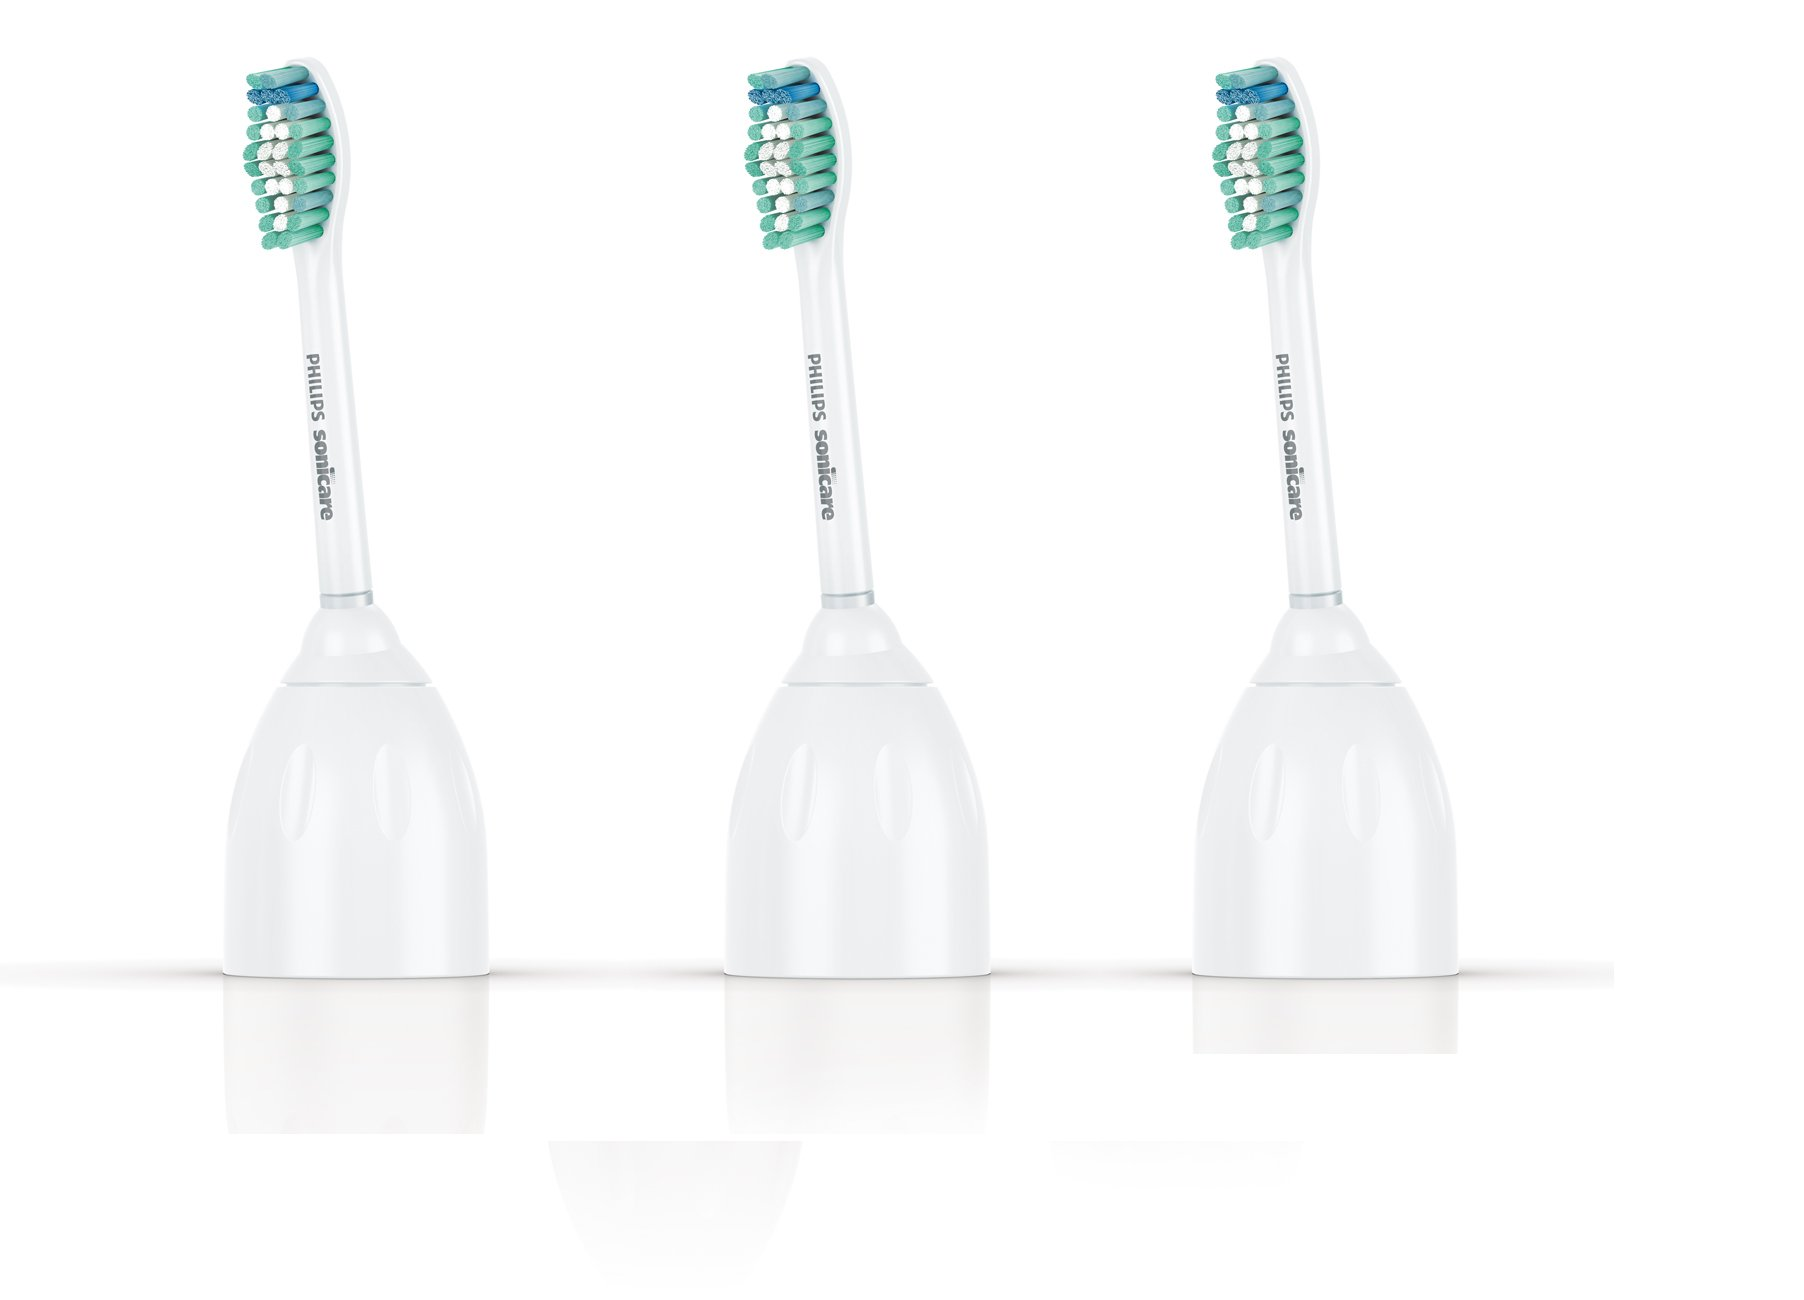 Philips Sonicare E-Series replacement toothbrush heads, HX7023/30, 3-pack